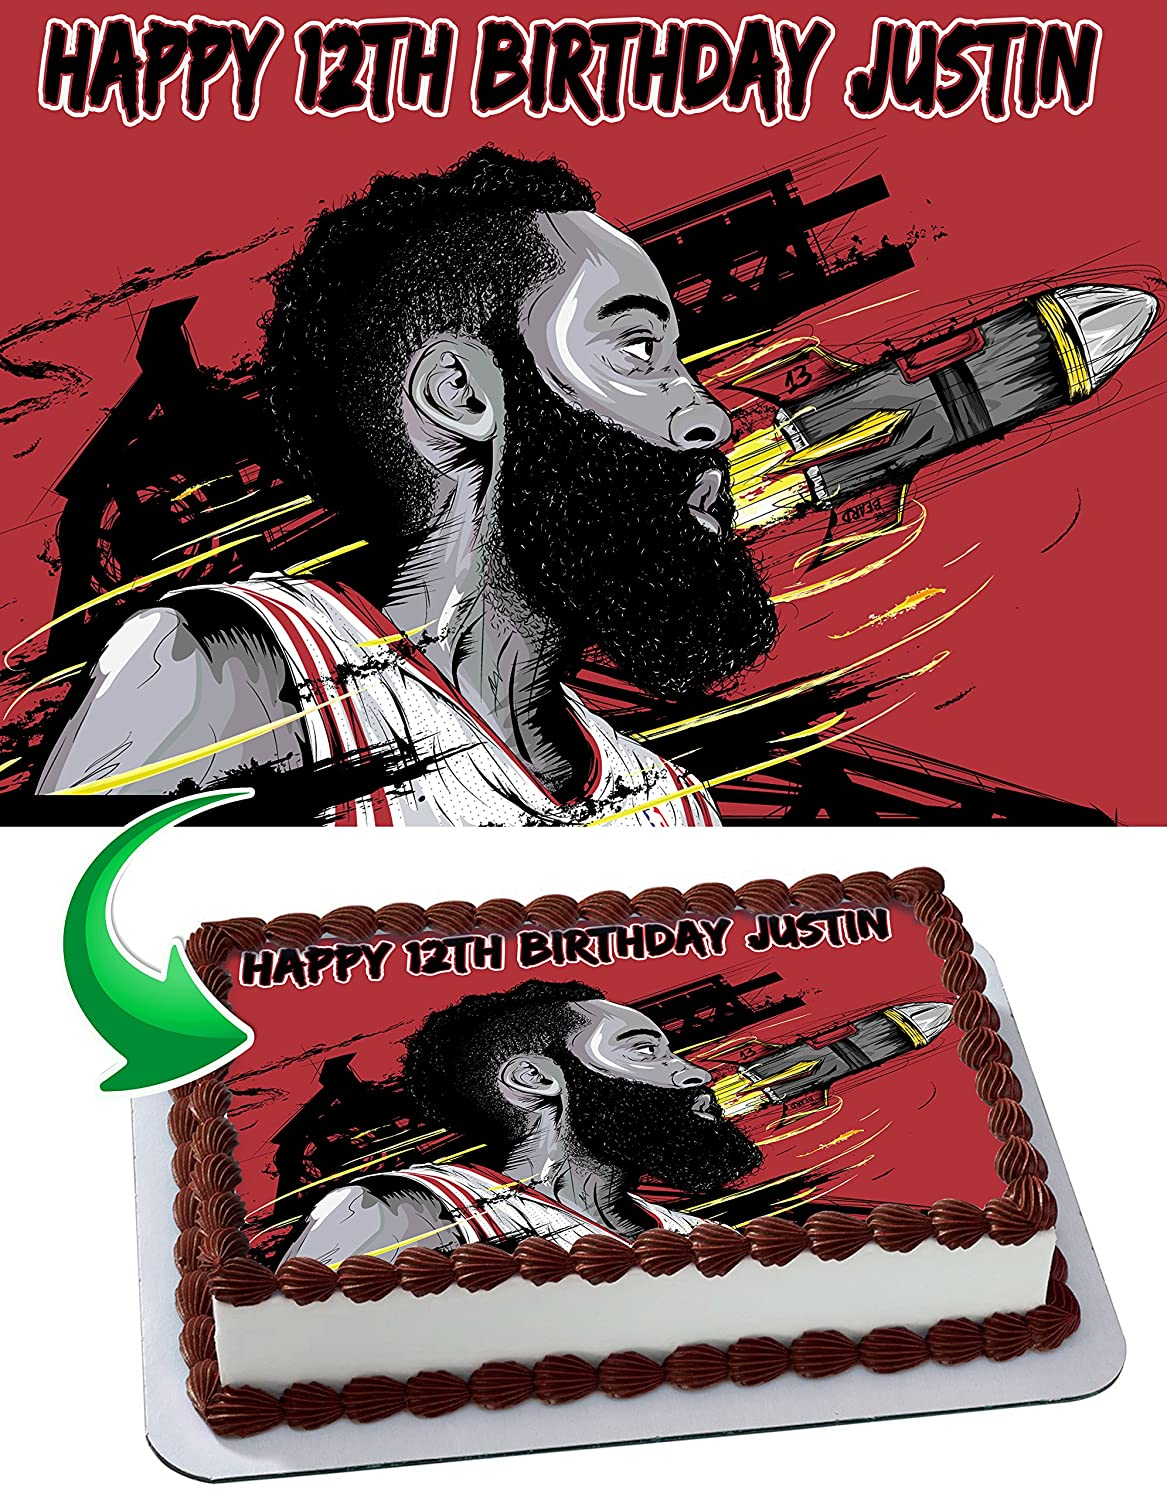 James Harden Houston Rockets Personalized Cake Toppers Icing Sugar Paper A4 Sheet Edible Frosting Photo Birthday Topper 1 4 Best Quality